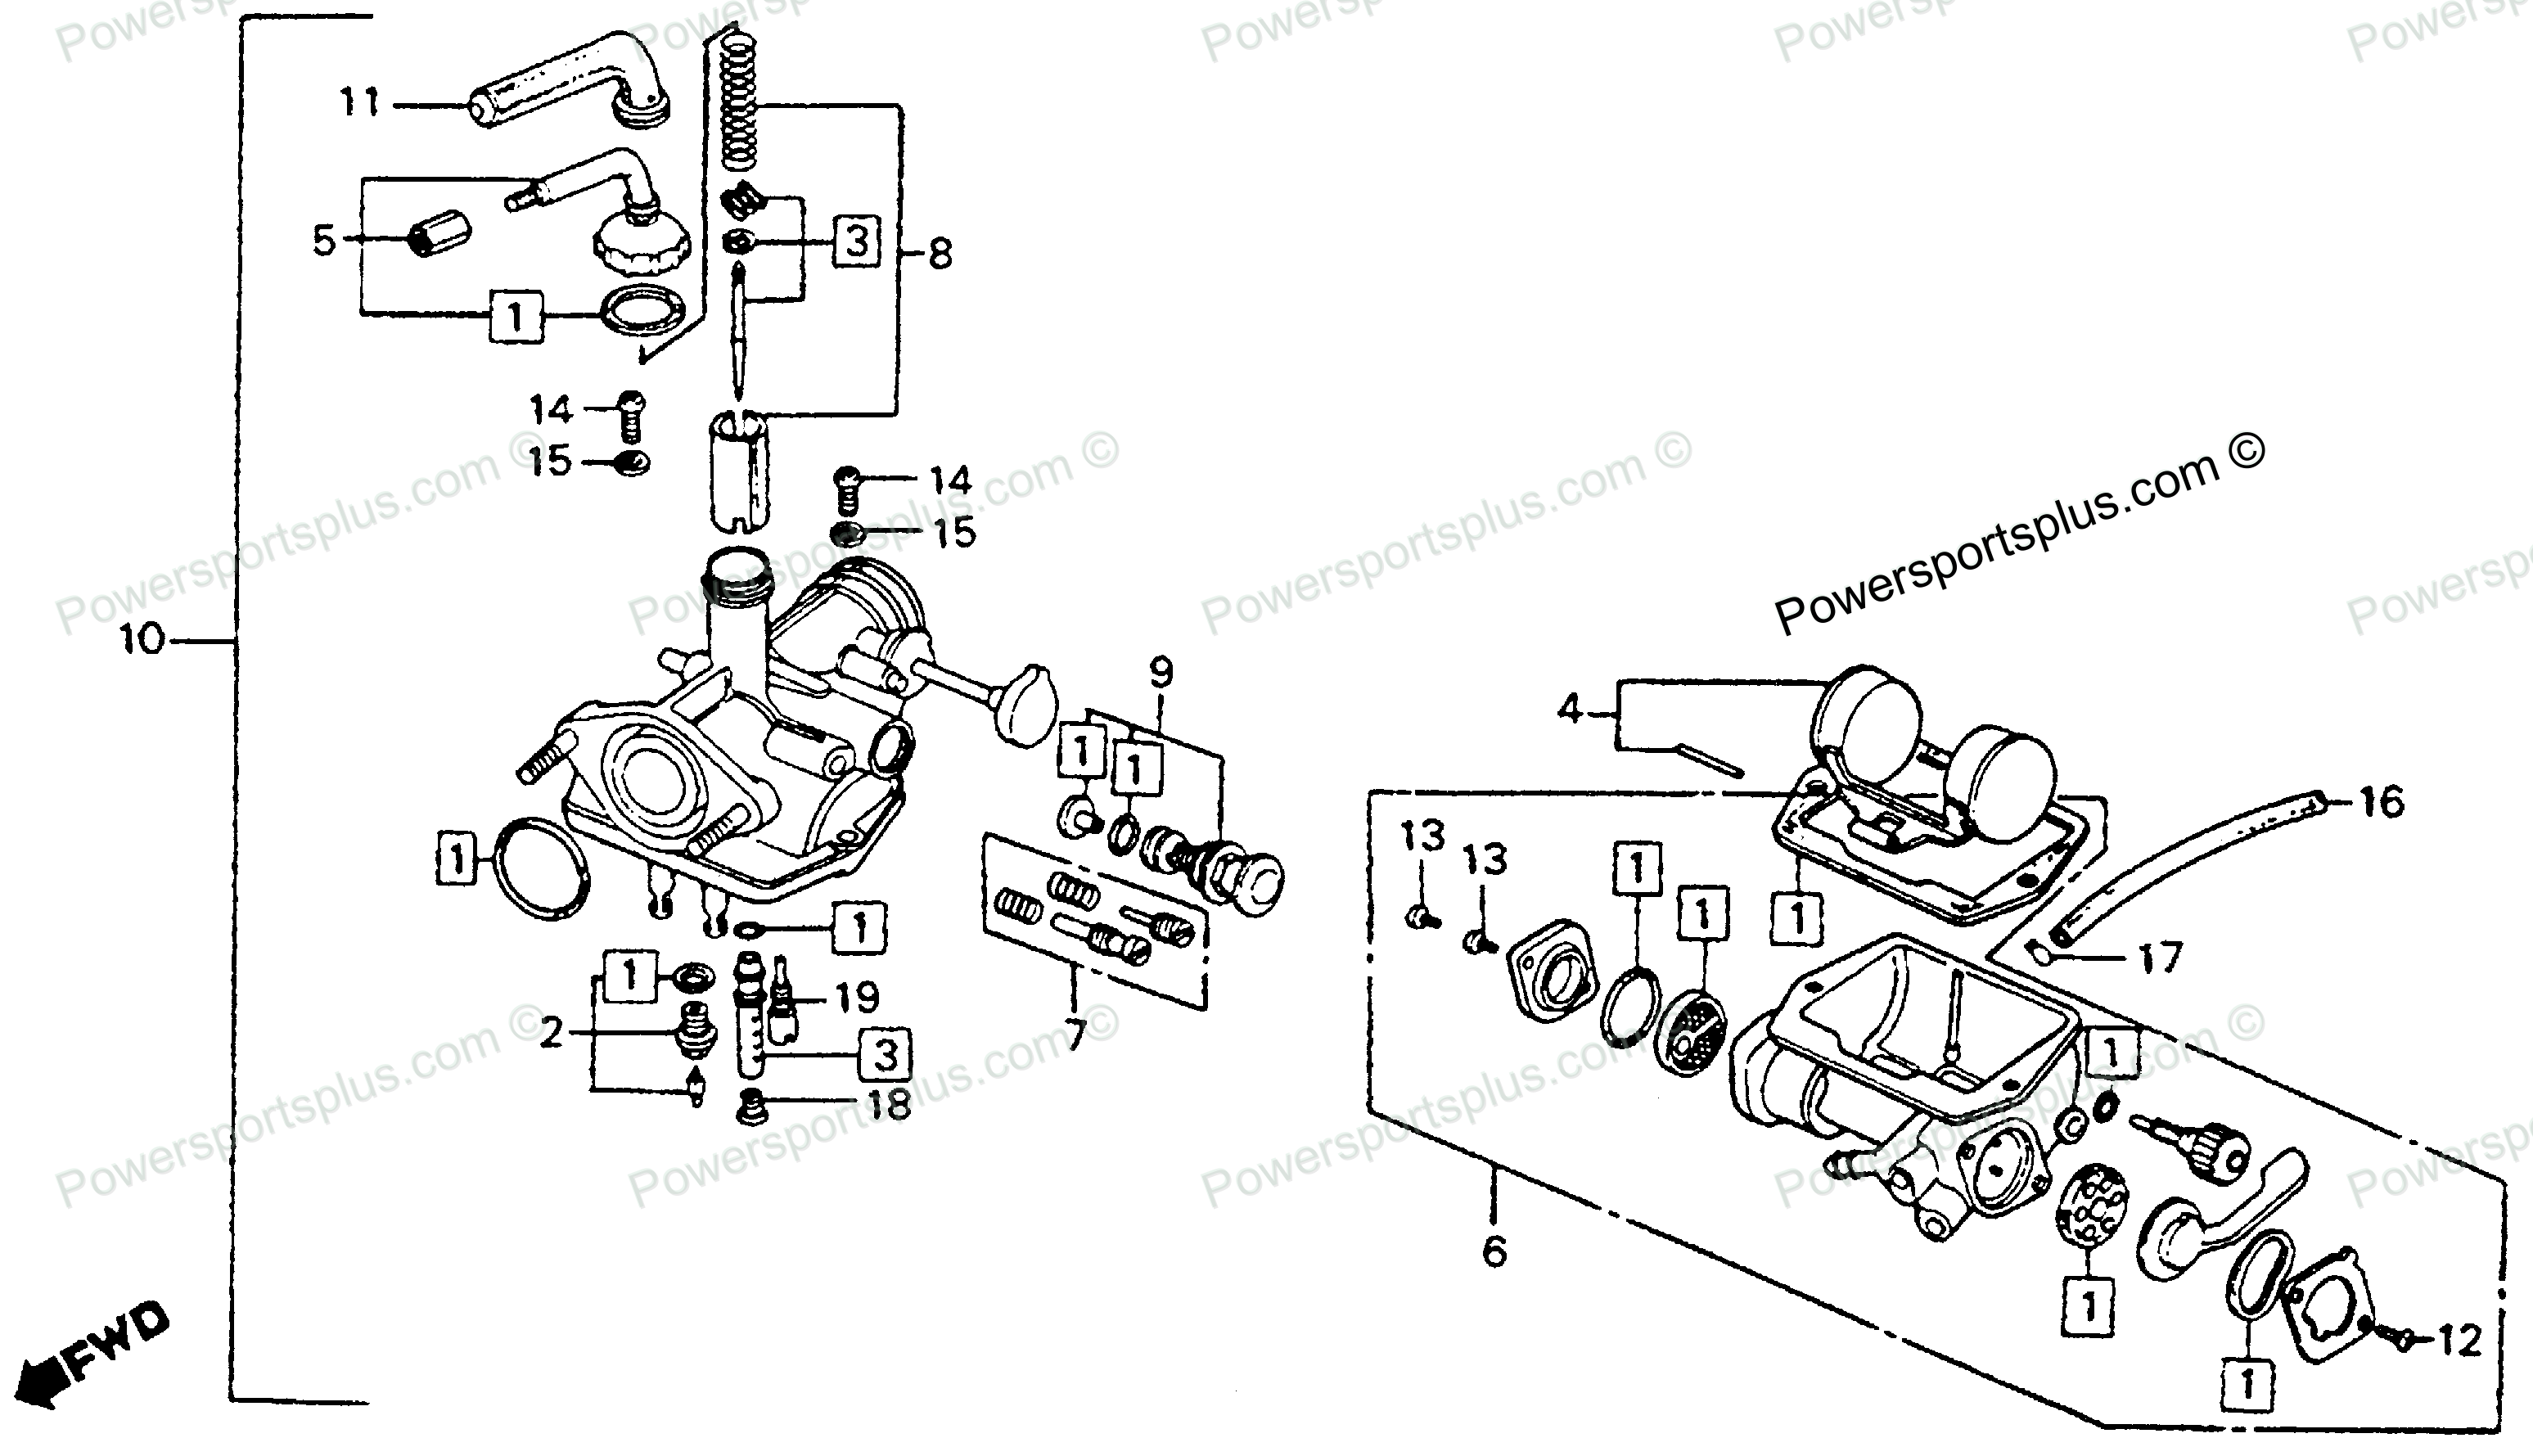 0efb18283ae24d7a2627632be070cf5c diagram of honda motorcycle parts 1976 ct90 a carburetor k6 77 1975 honda ct90 wiring diagram at panicattacktreatment.co